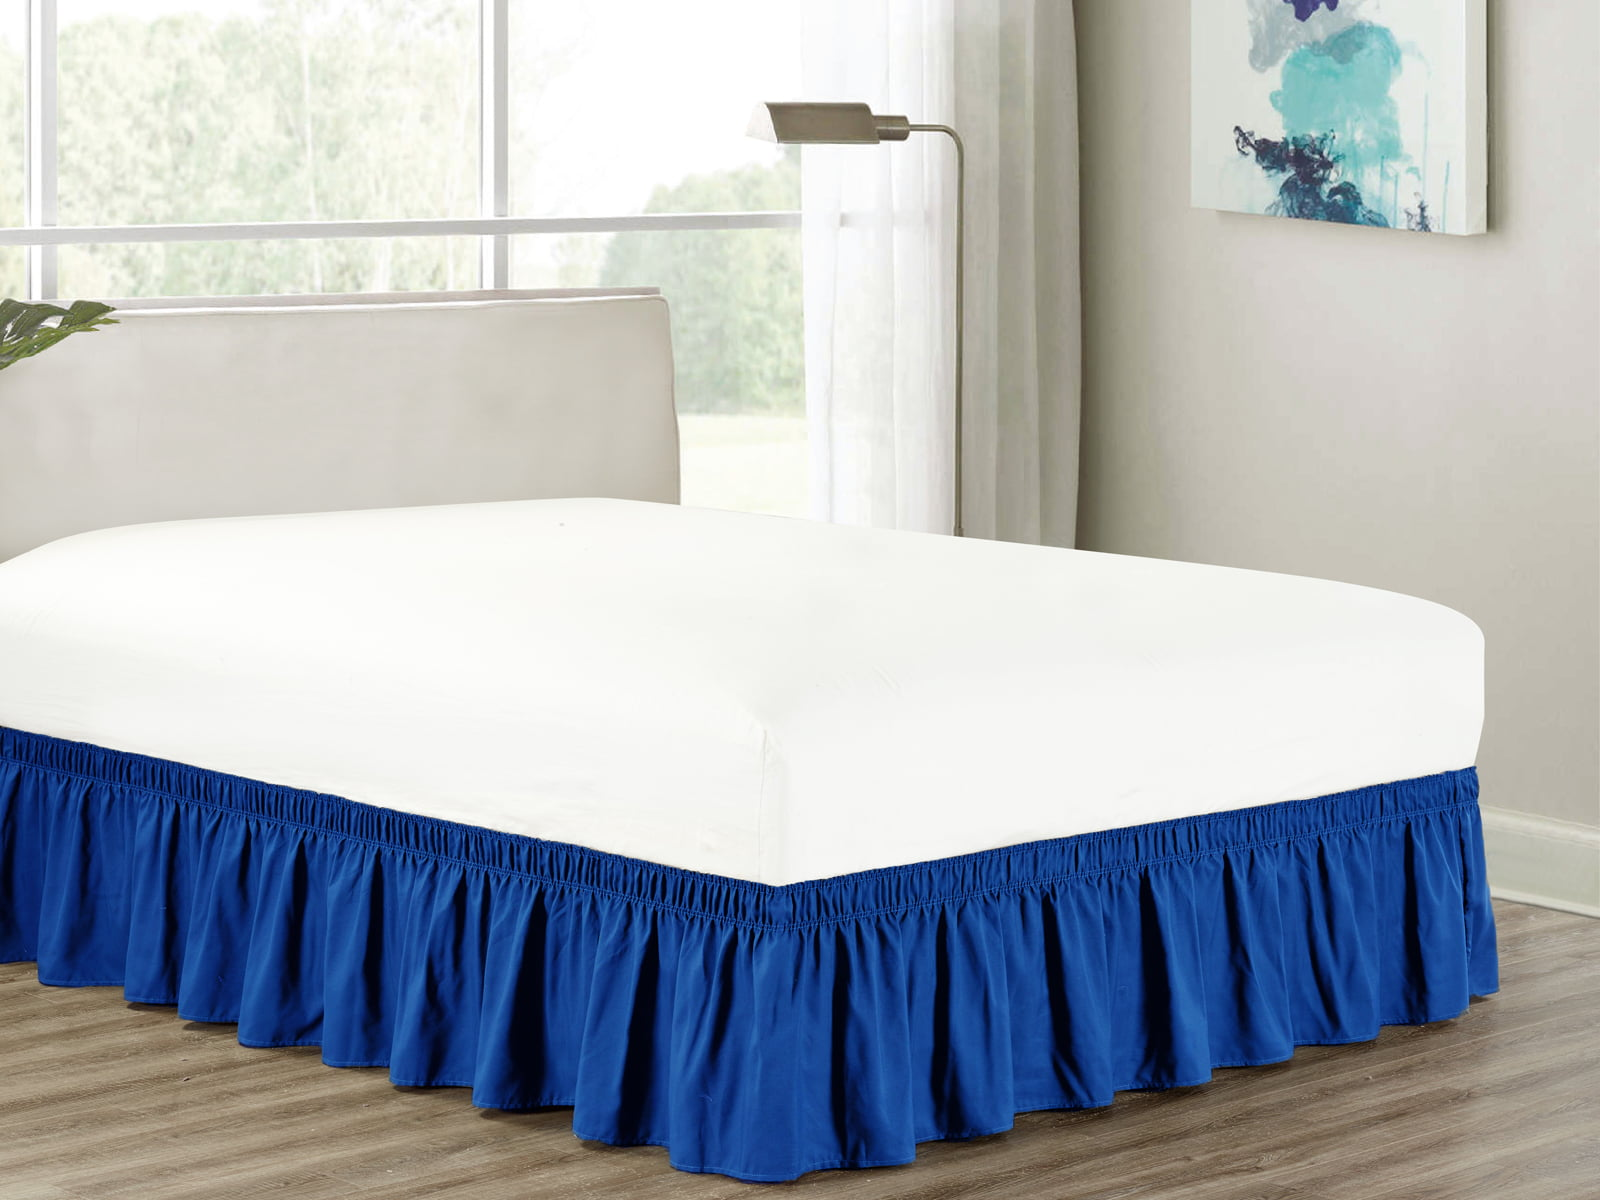 "Heavy Duty Elastic Wrap-Around 18"" Drop Dust Ruffled Bedskirt Cover Blue Queen by HG station"